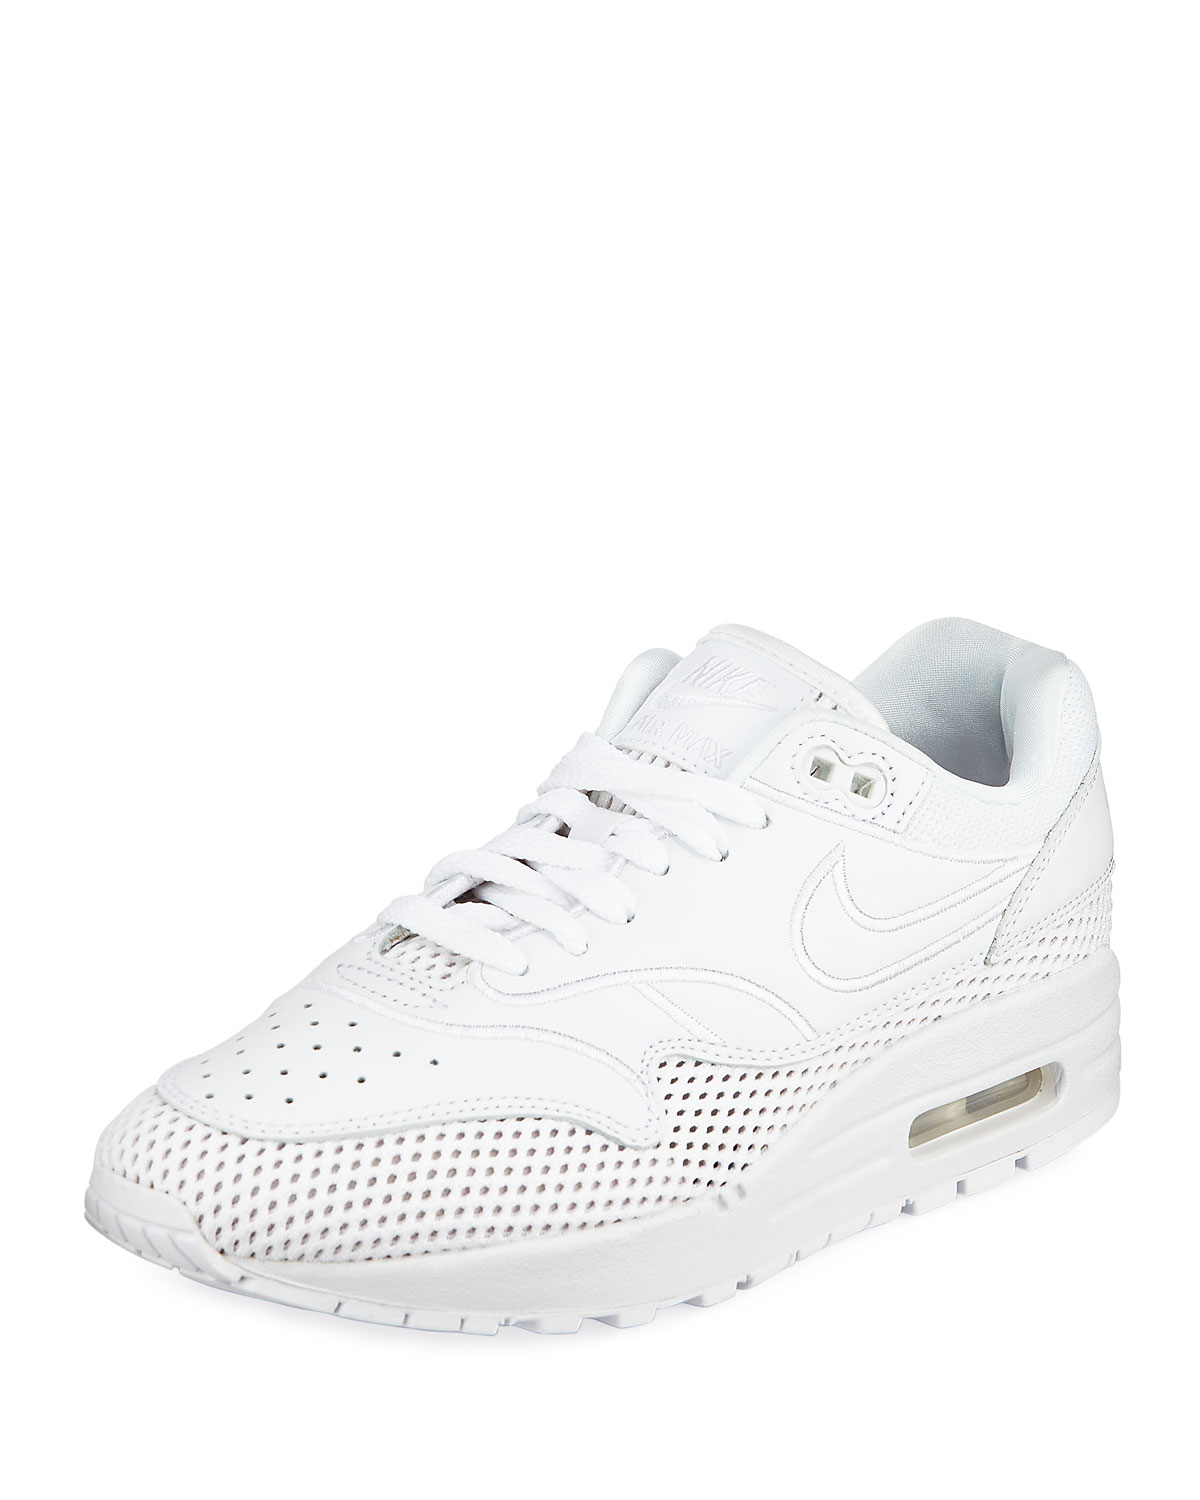 a36c0cfdf2fe8 Nike Air Max 1 Women s Premium Leather Sneakers